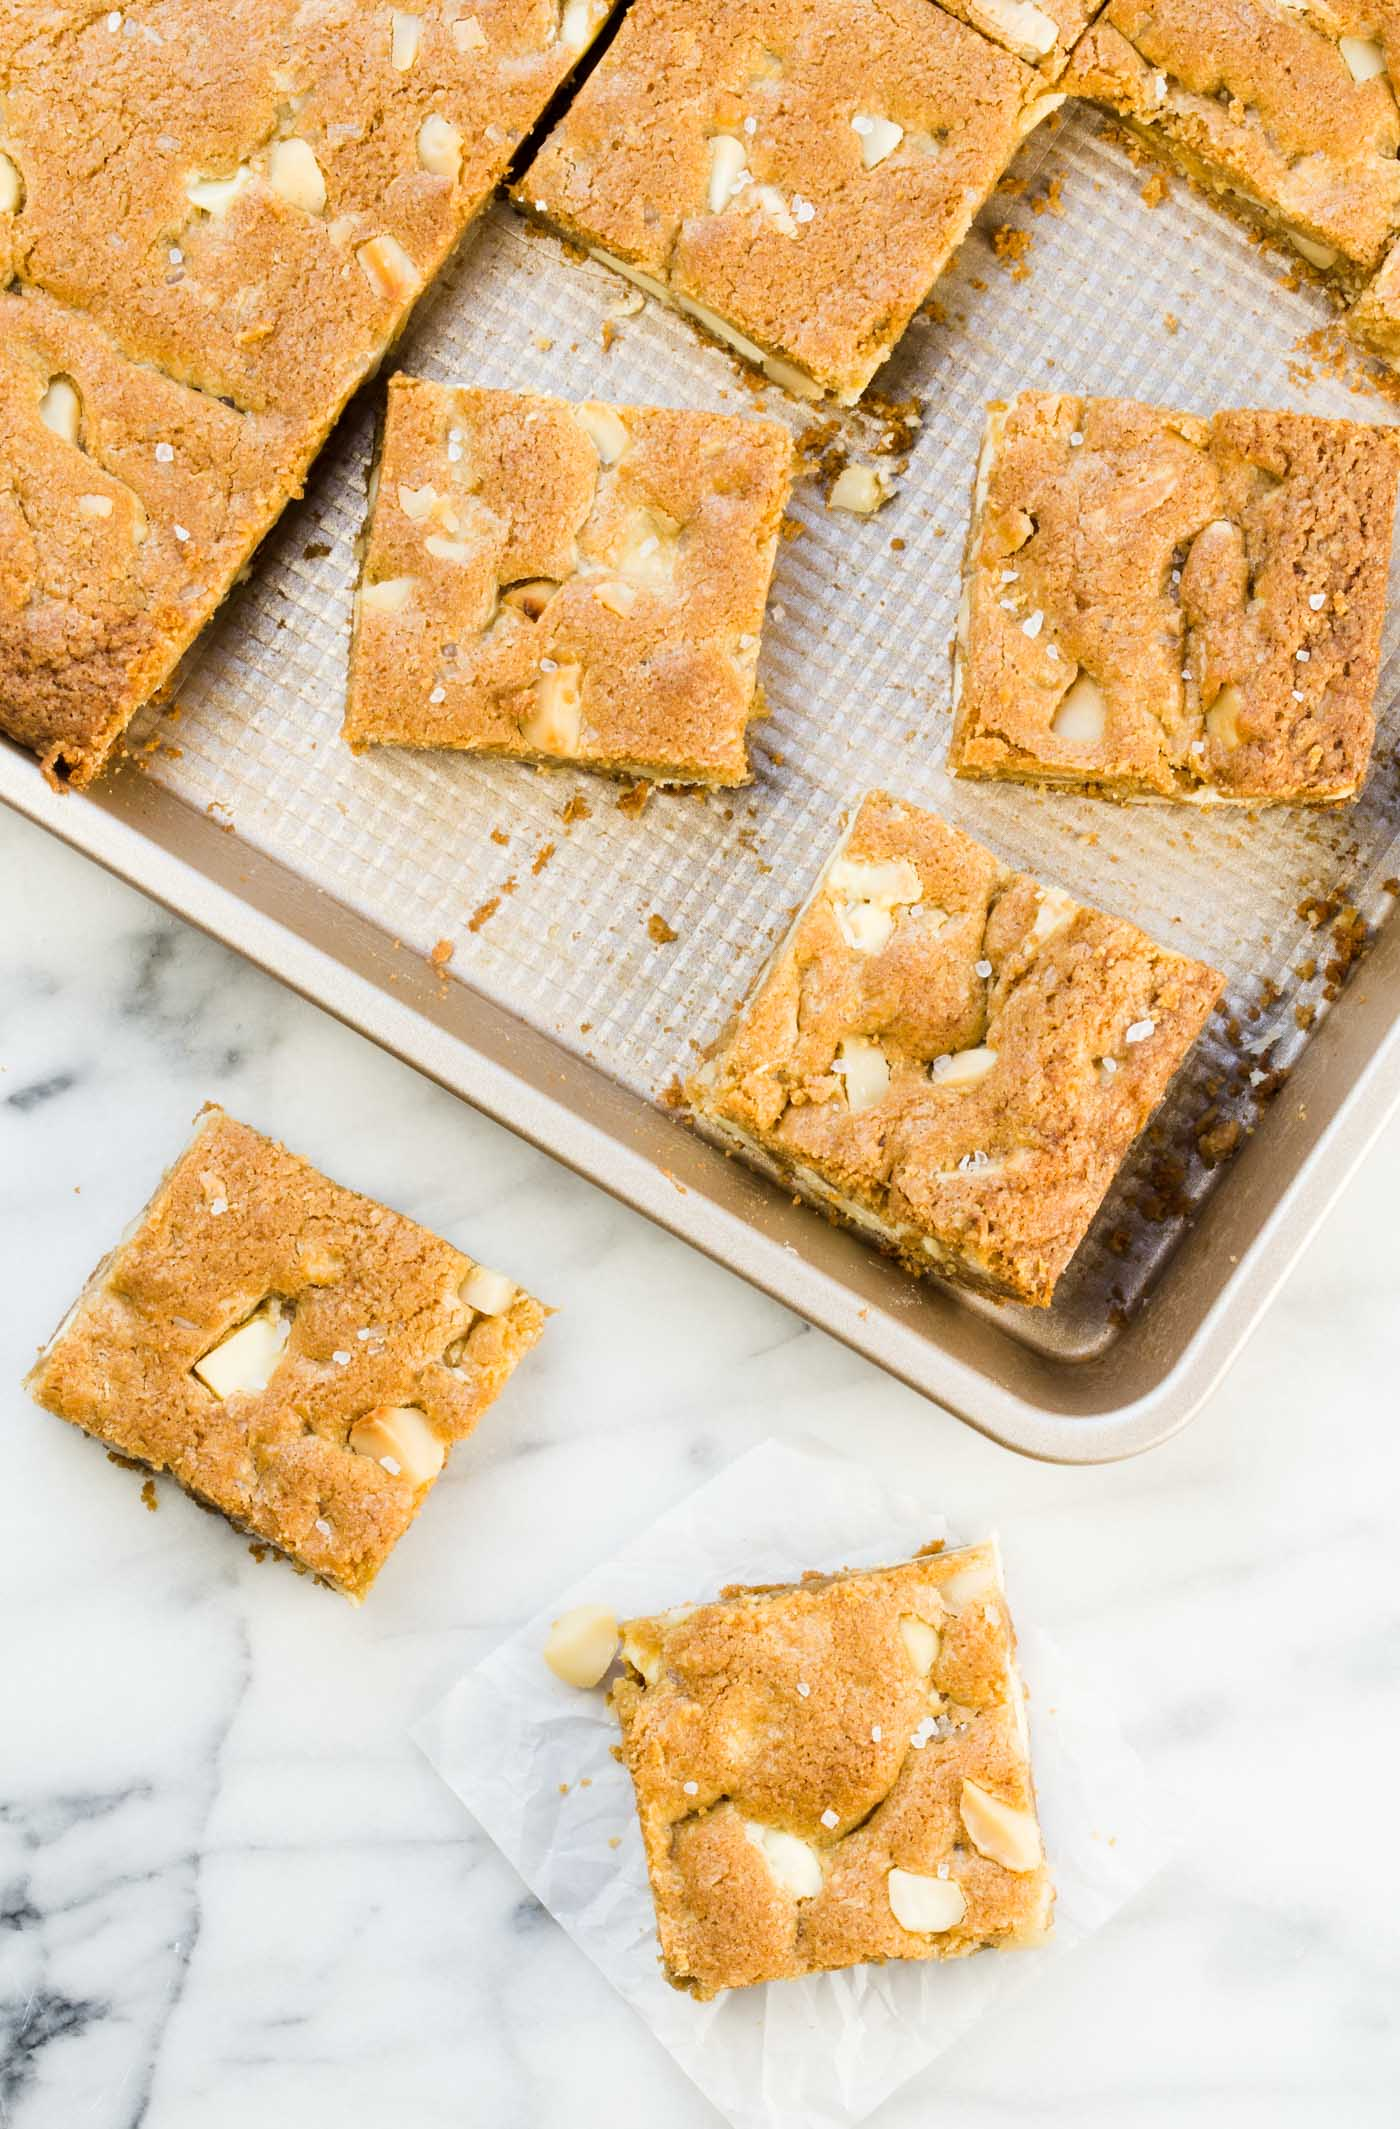 White Chocolate Macadamia Nut Cookie Bars - Garnish with Lemon